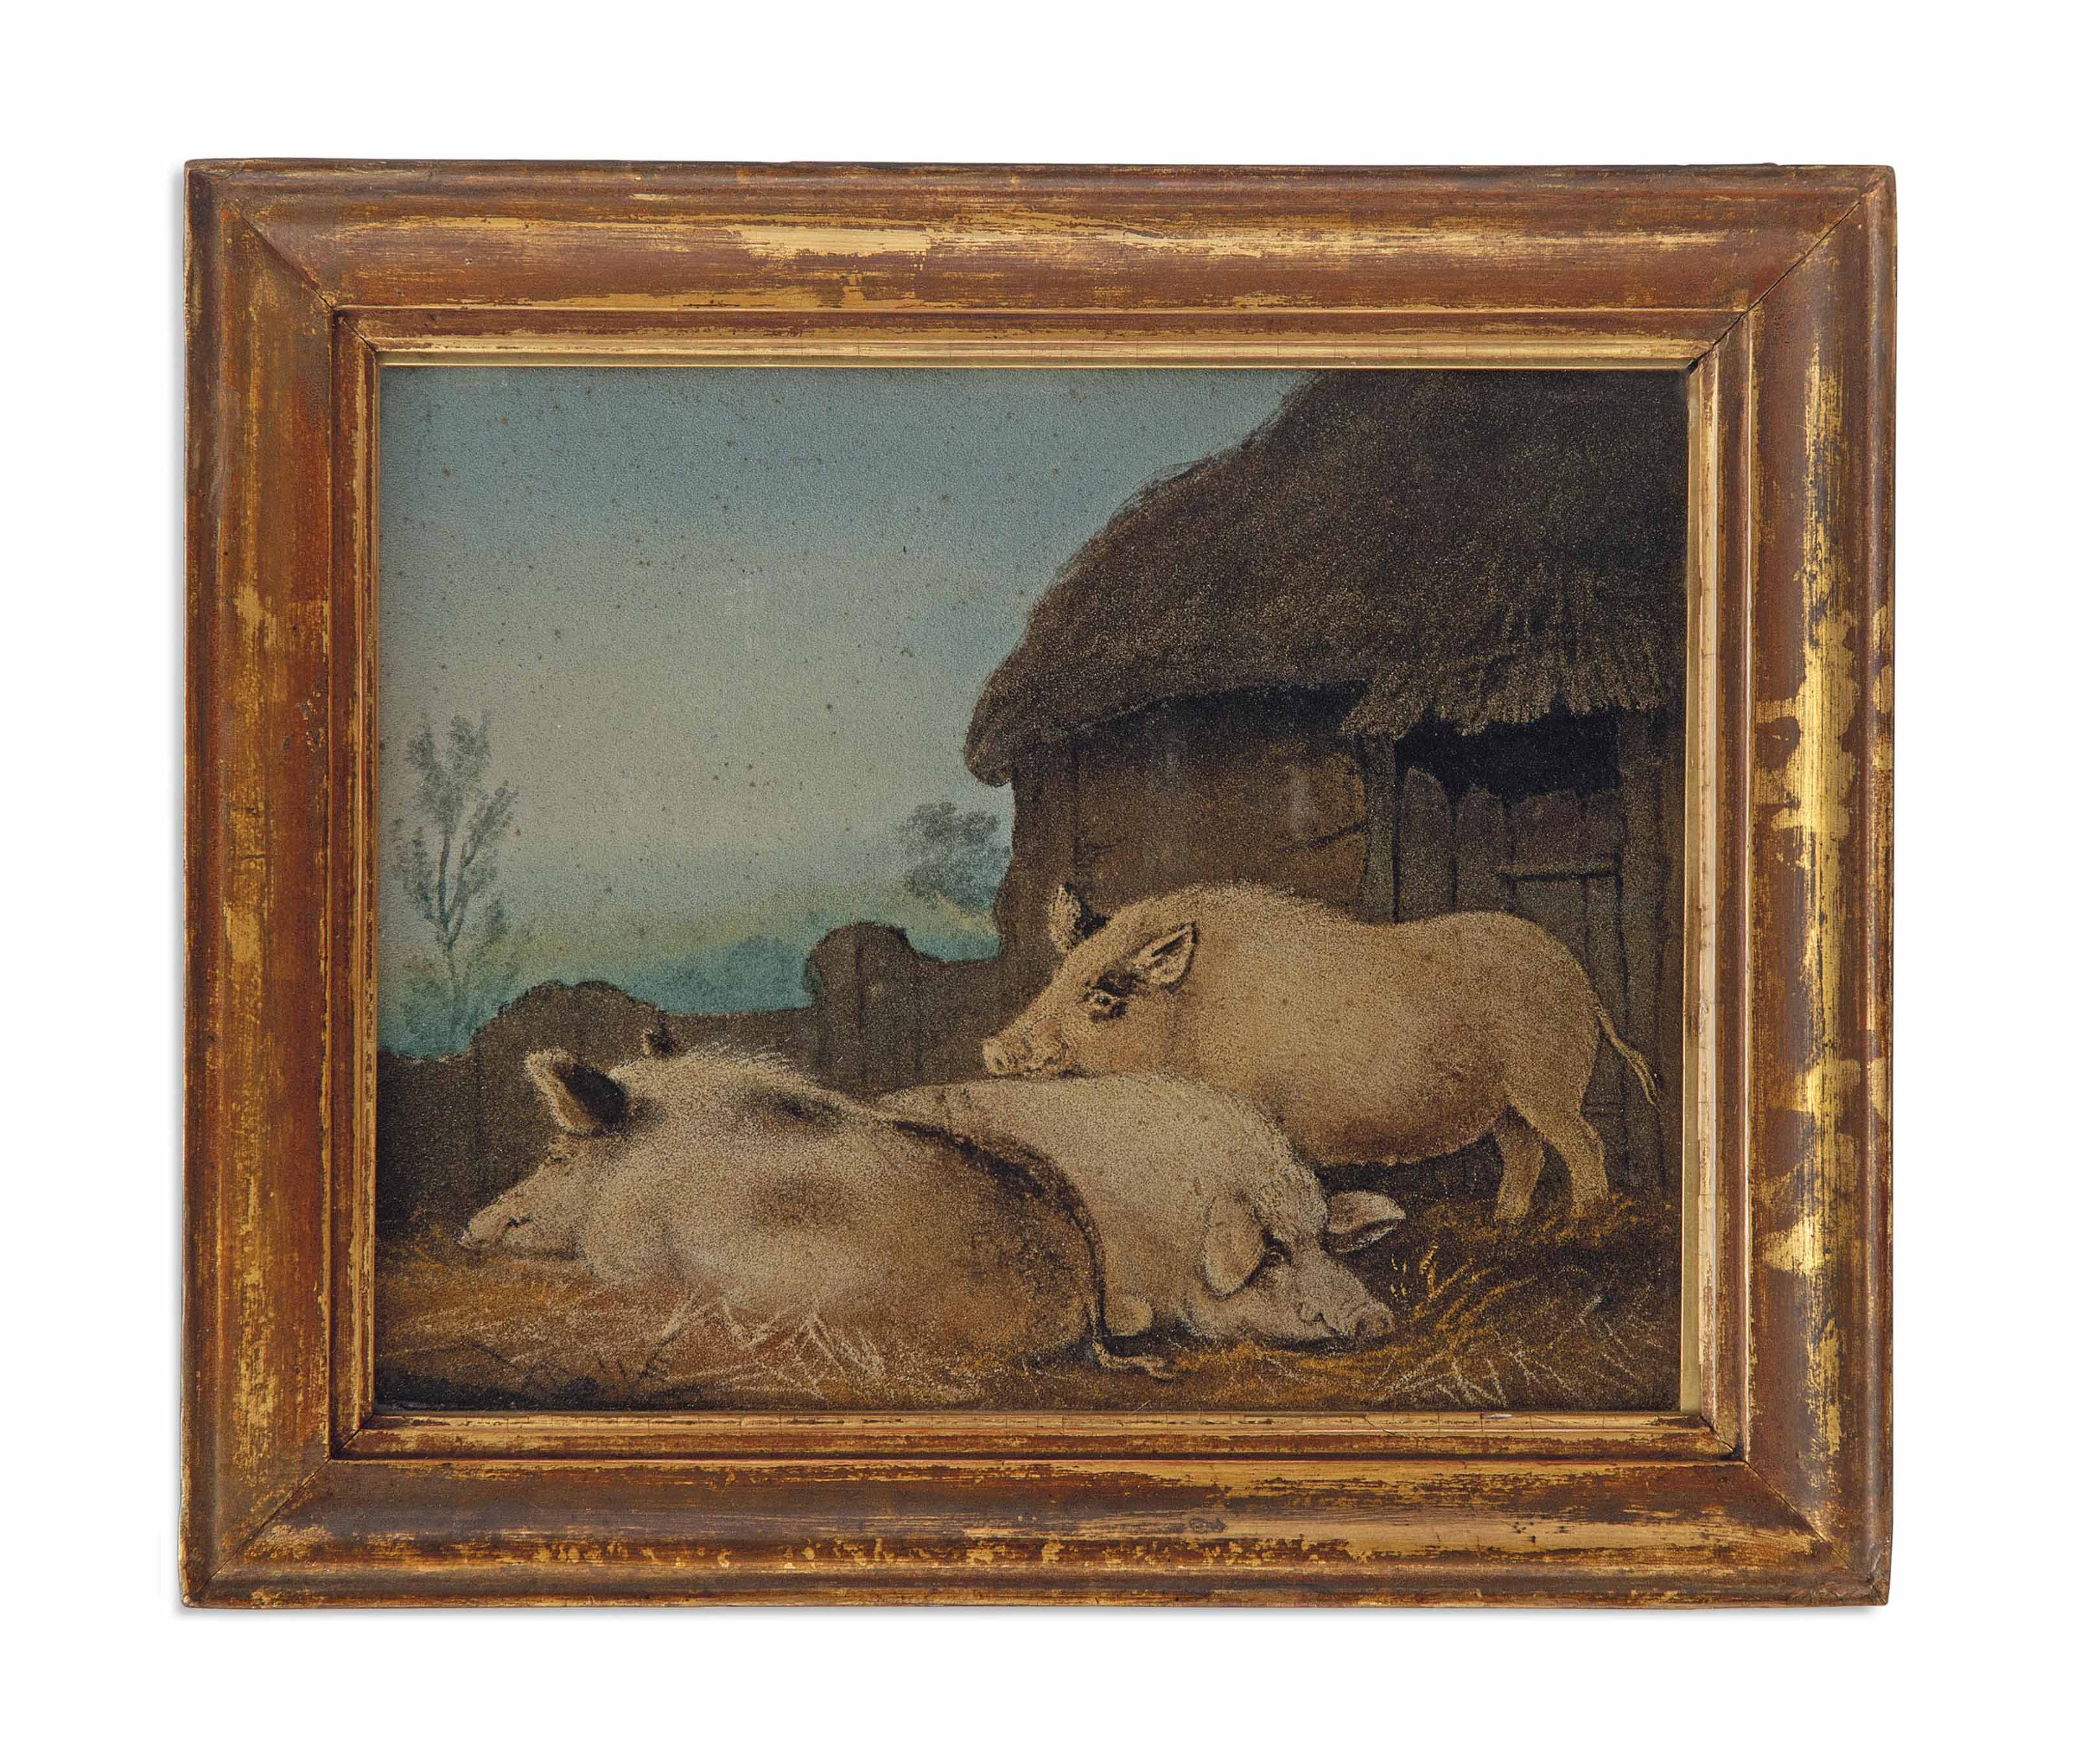 A REGENCY SAND PICTURE OF PIGS